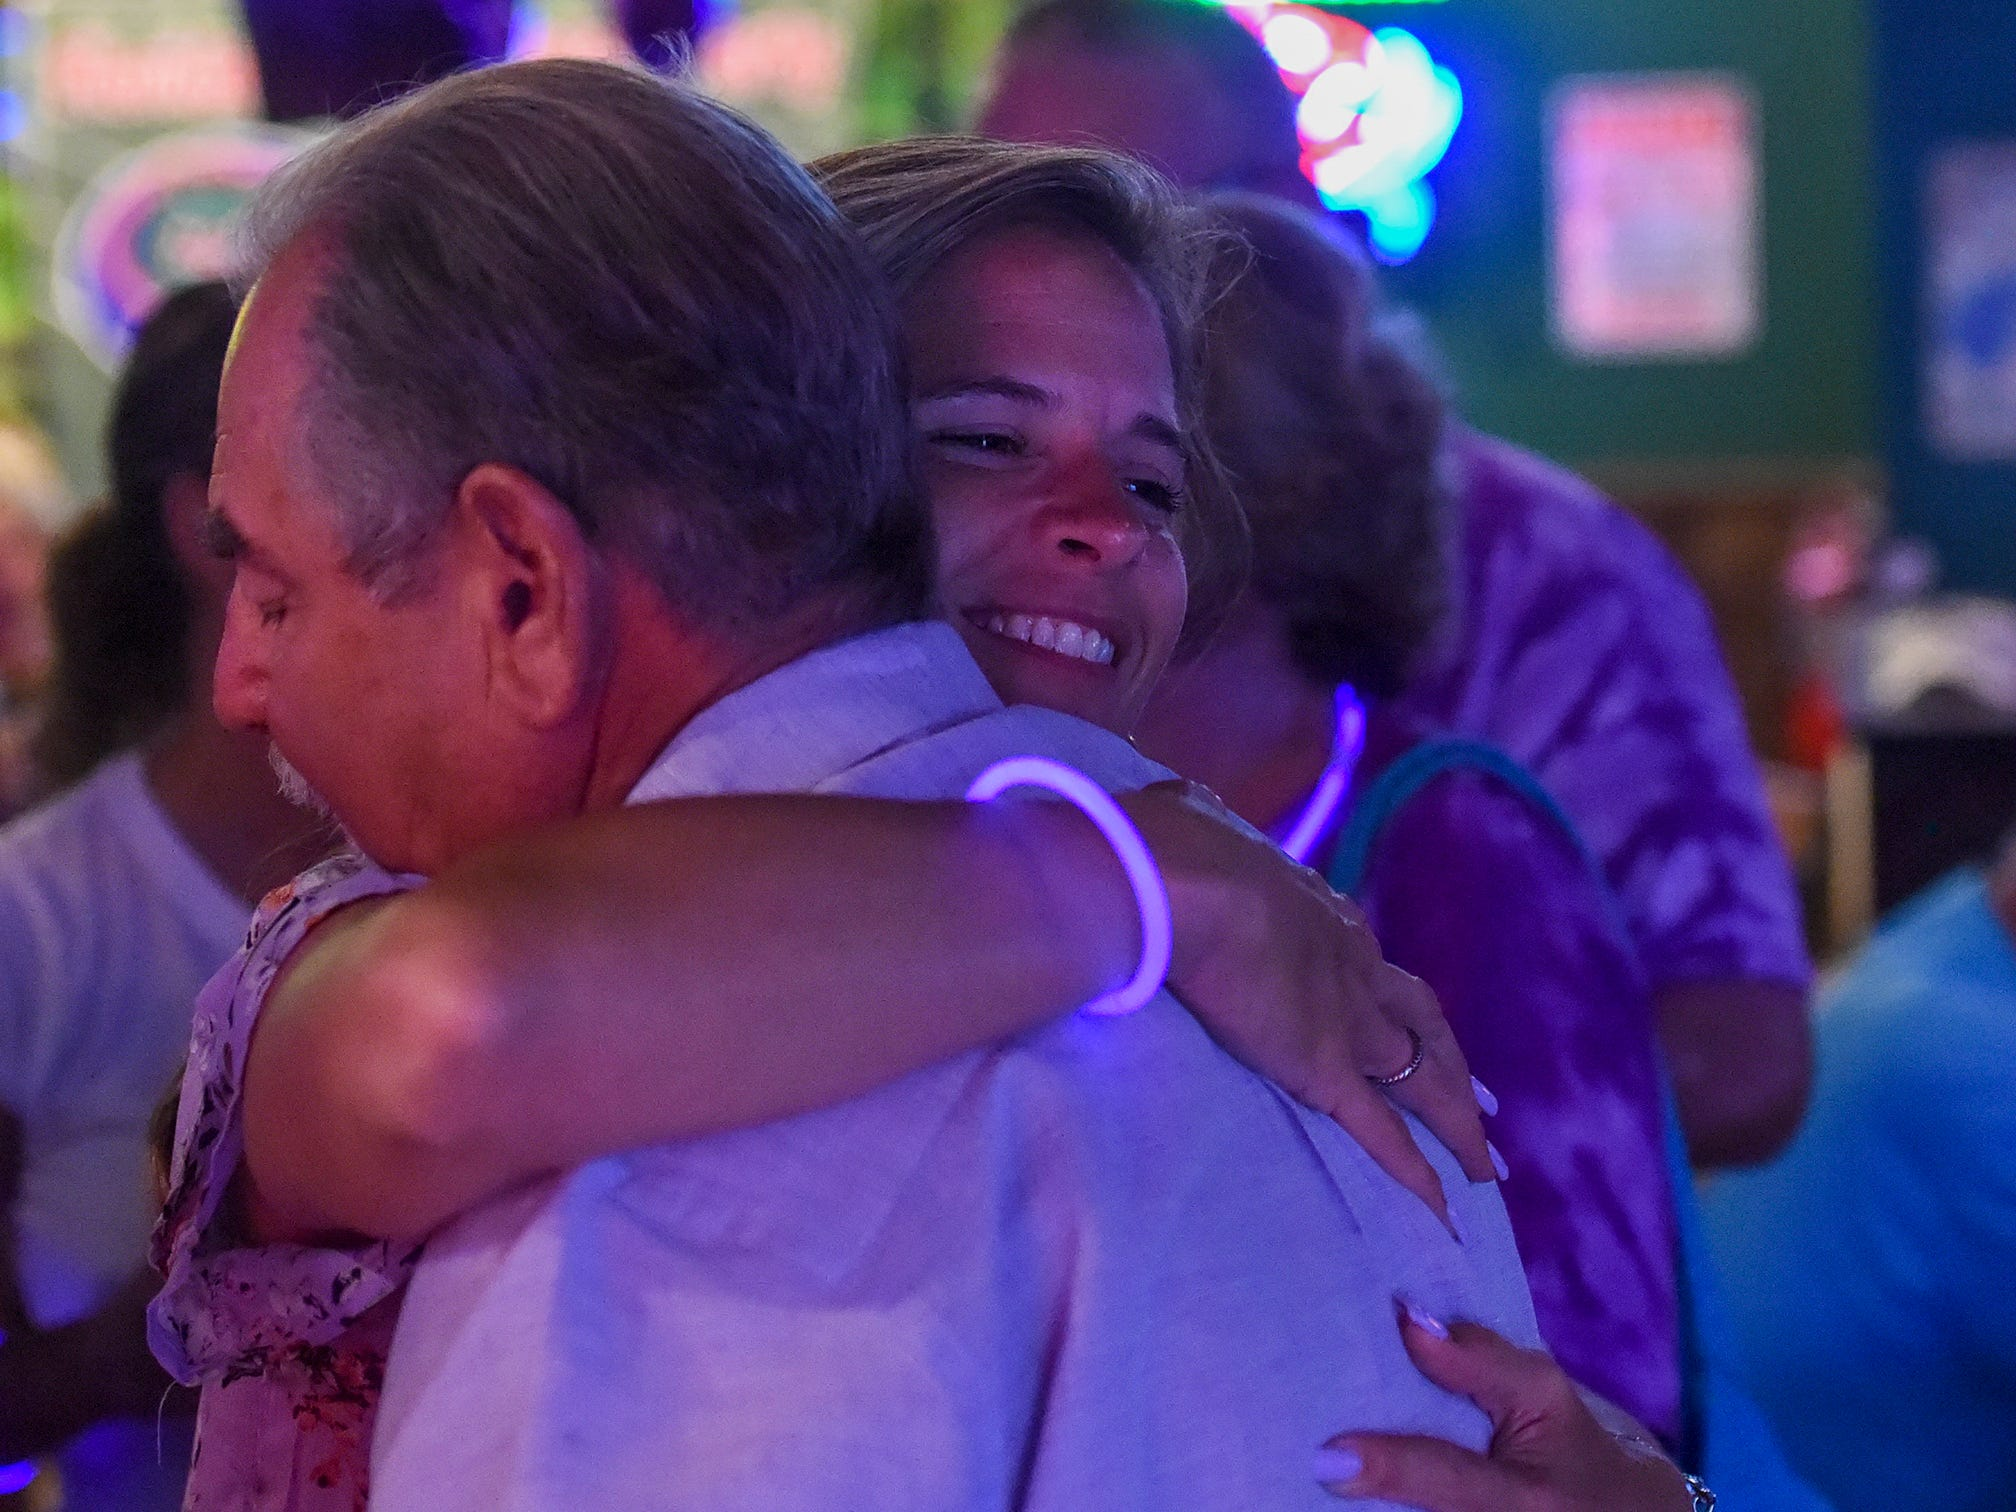 Martin County Commission District 4 candidate Niki Norton awaits election results Tuesday, Aug. 28, 2018, with friends, family, and supporters during her election night party at Charlie's Neighborhood Bar and Grill in Stuart.